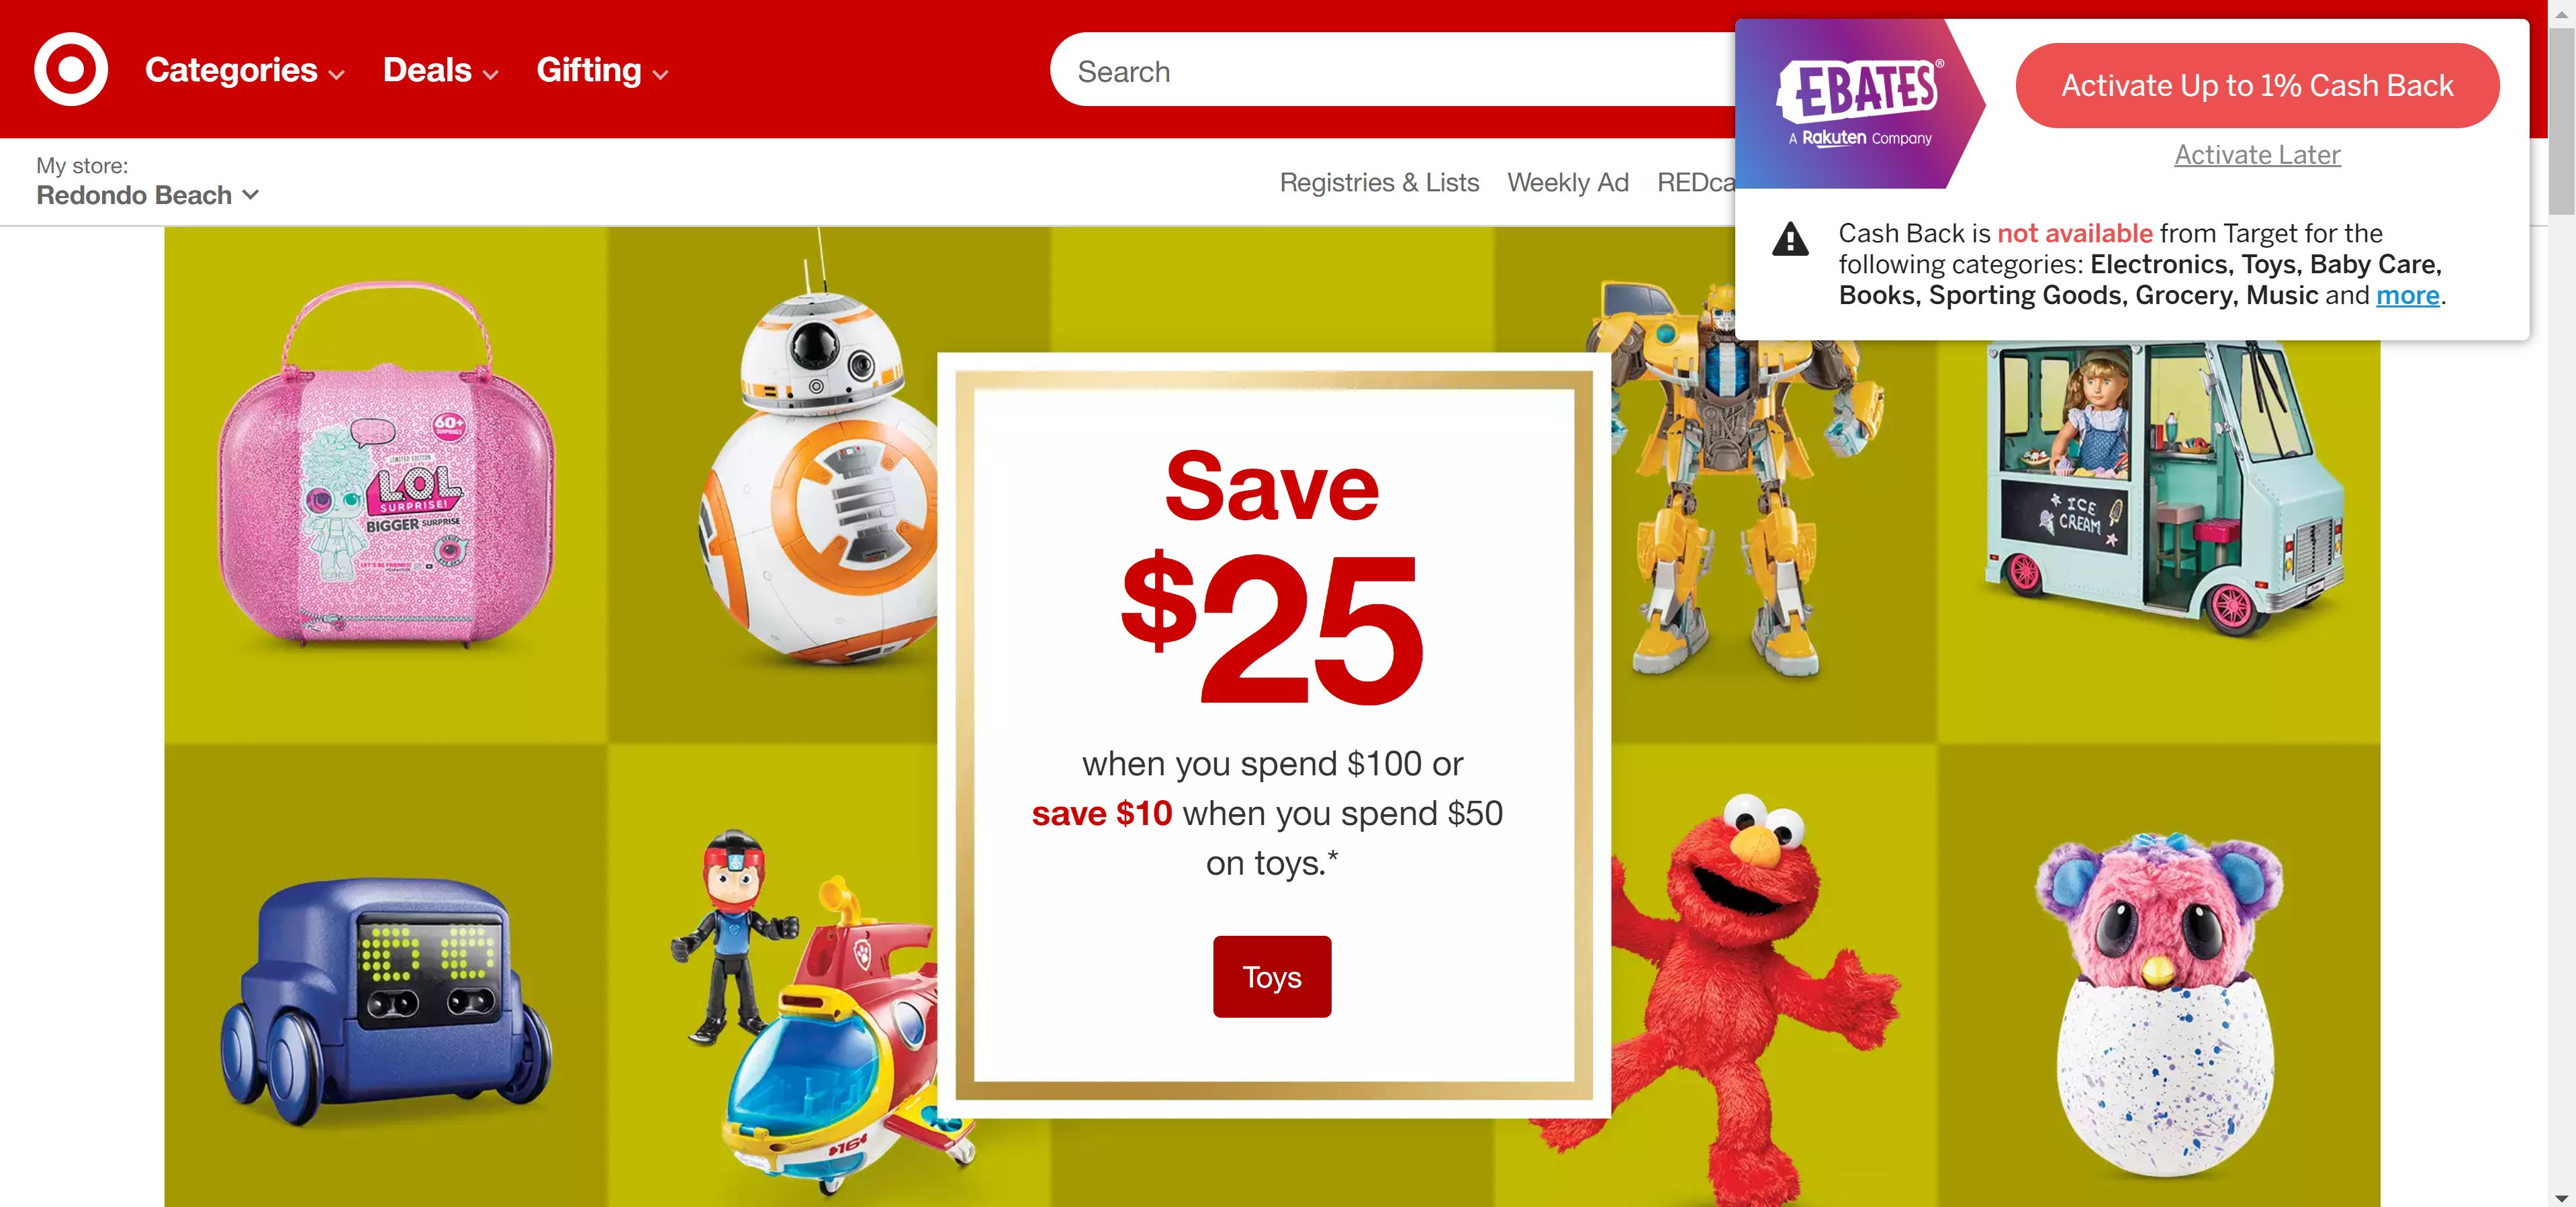 The Ebates Chrome extension notifies shoppers of cash back opportunities at Target.